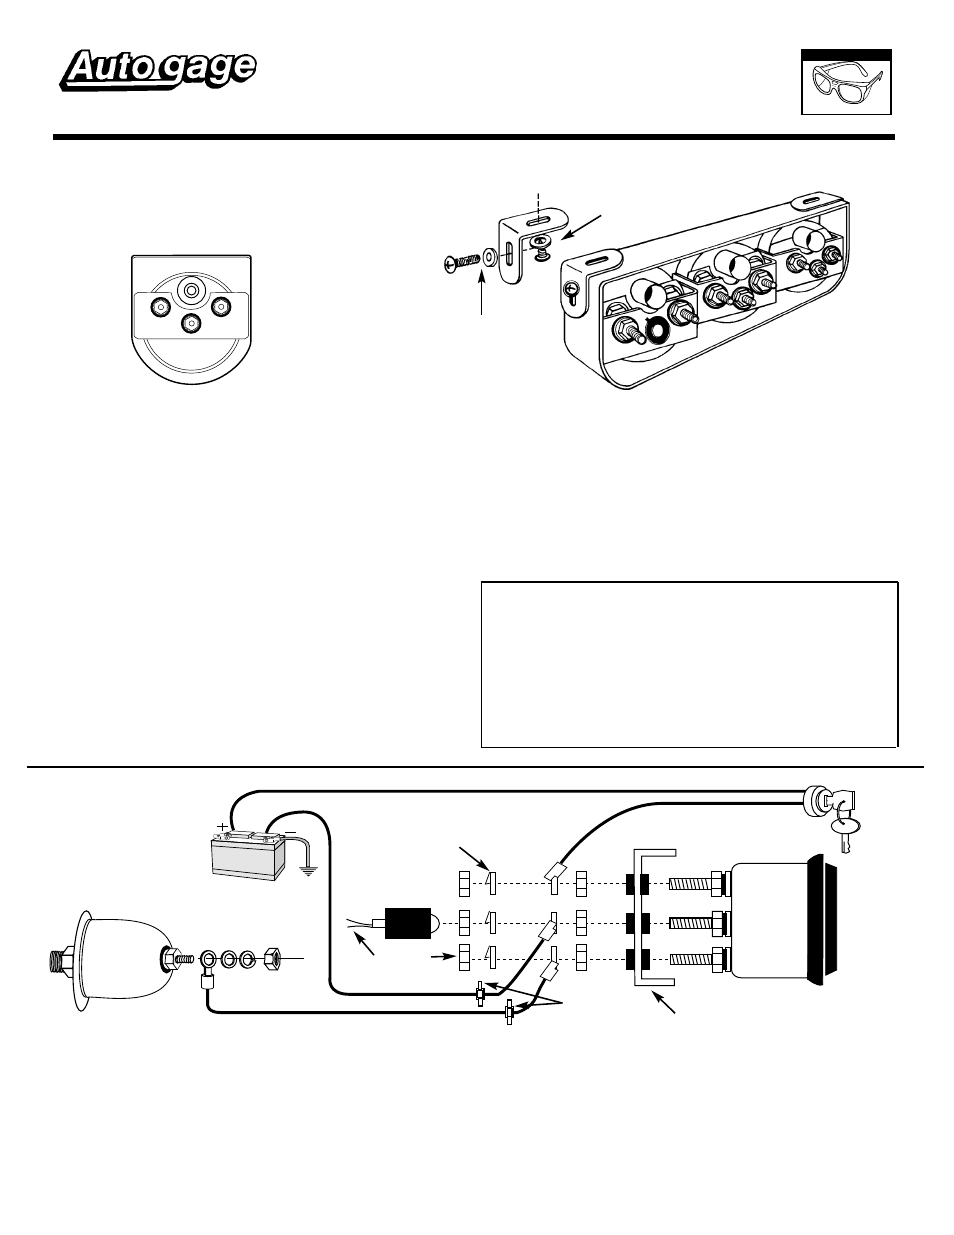 Auto Meter 2391 User Manual 2 Pages Also For 2356 2355 2354 Autometer Gauge Wiring Instructions